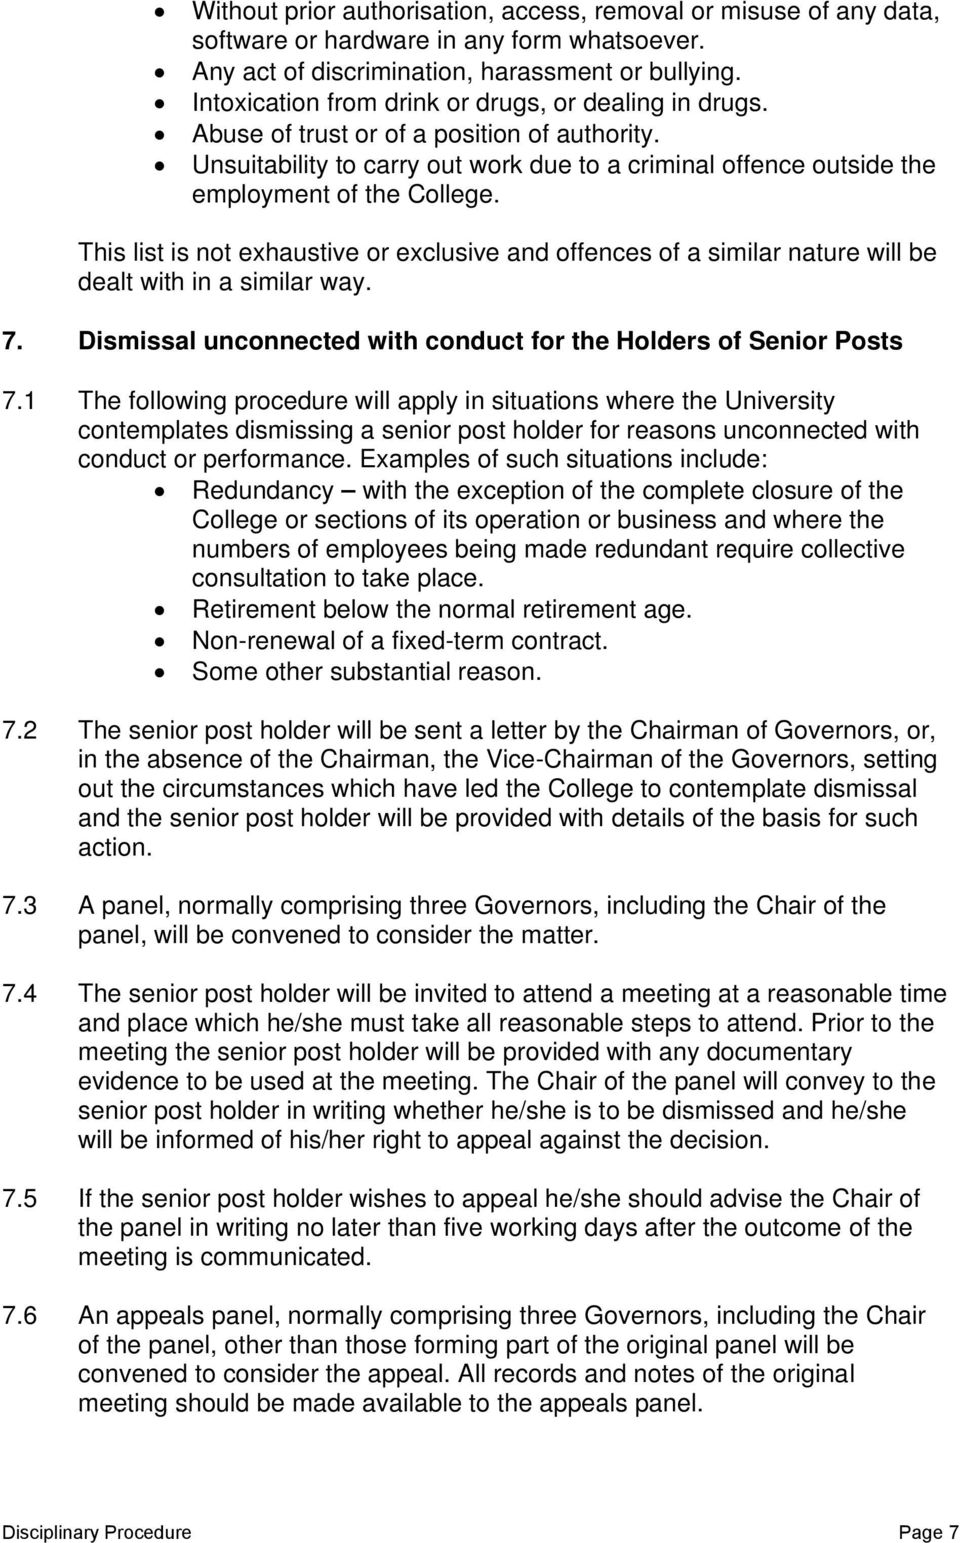 This list is not exhaustive or exclusive and offences of a similar nature will be dealt with in a similar way. 7. Dismissal unconnected with conduct for the Holders of Senior Posts 7.